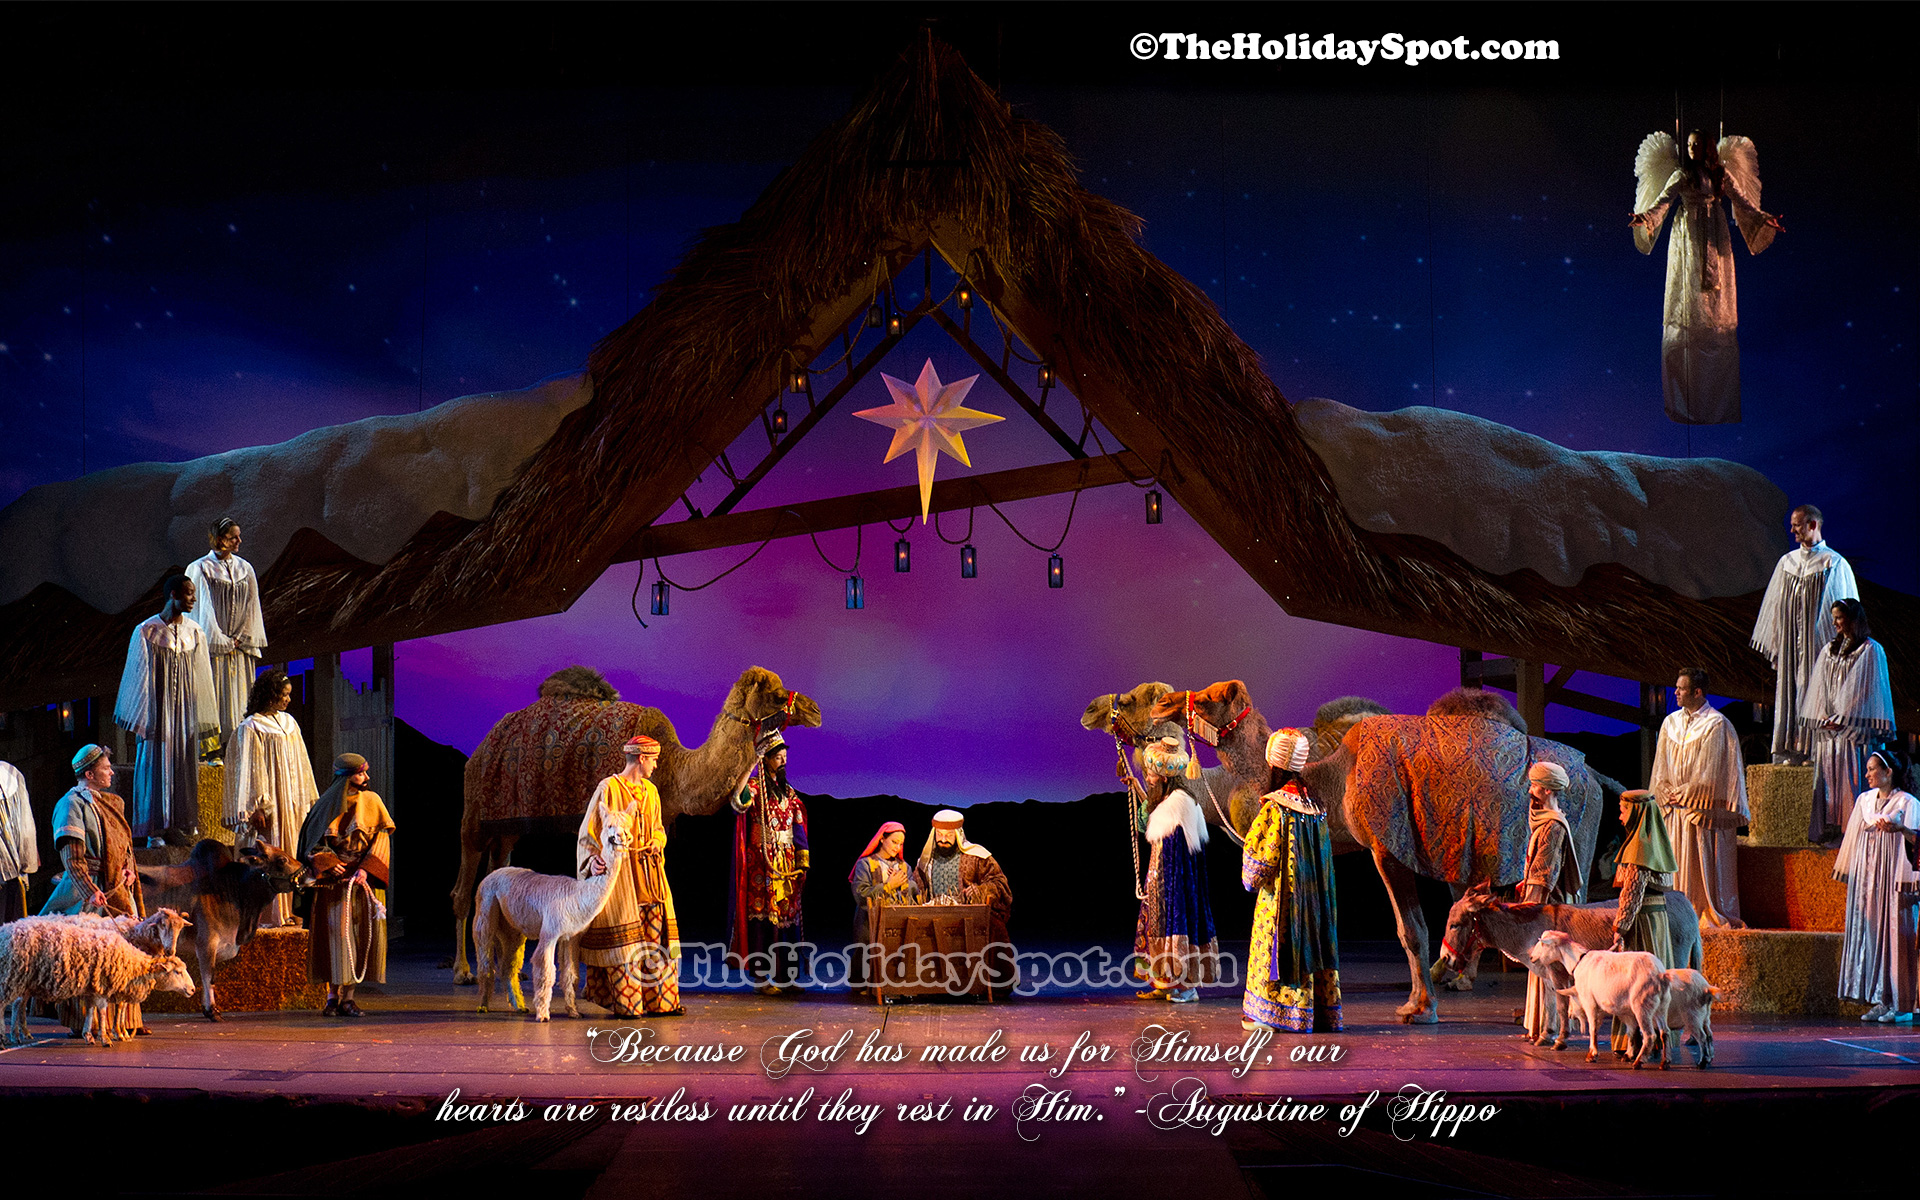 Top 24 Best Free Hd Christmas Wallpapers: Baby Jesus Screensavers And Wallpaper